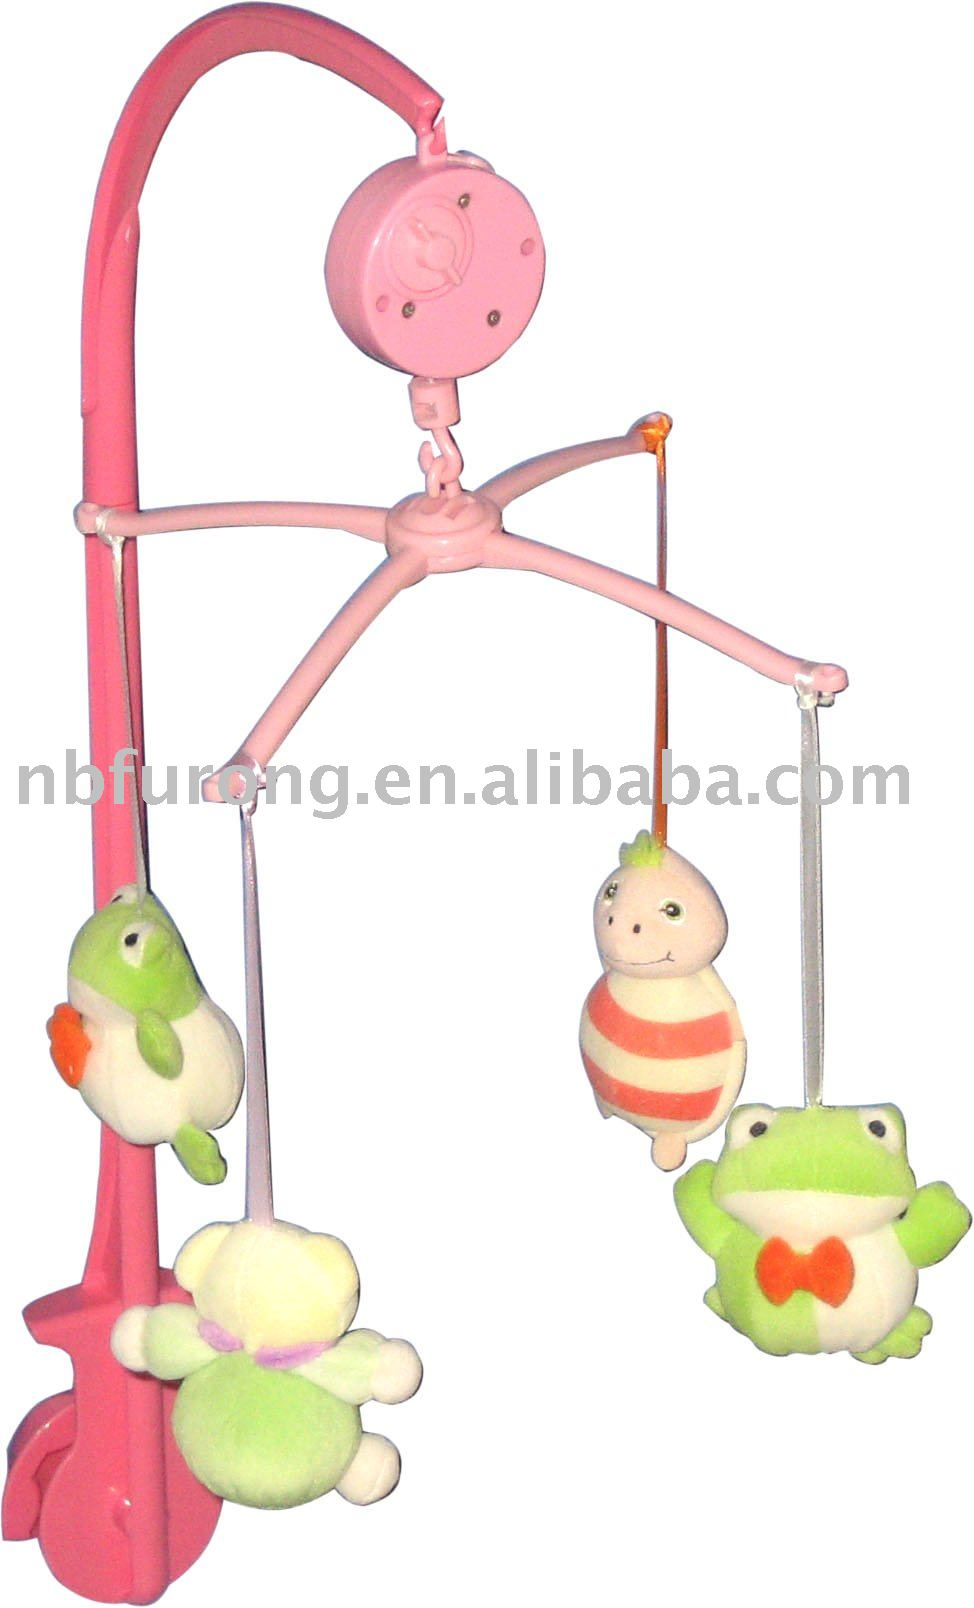 Crib music box for babies - Bed Toy Baby Crib Mobile Music Box Bed Toy Baby Crib Mobile Music Box Suppliers And Manufacturers At Alibaba Com